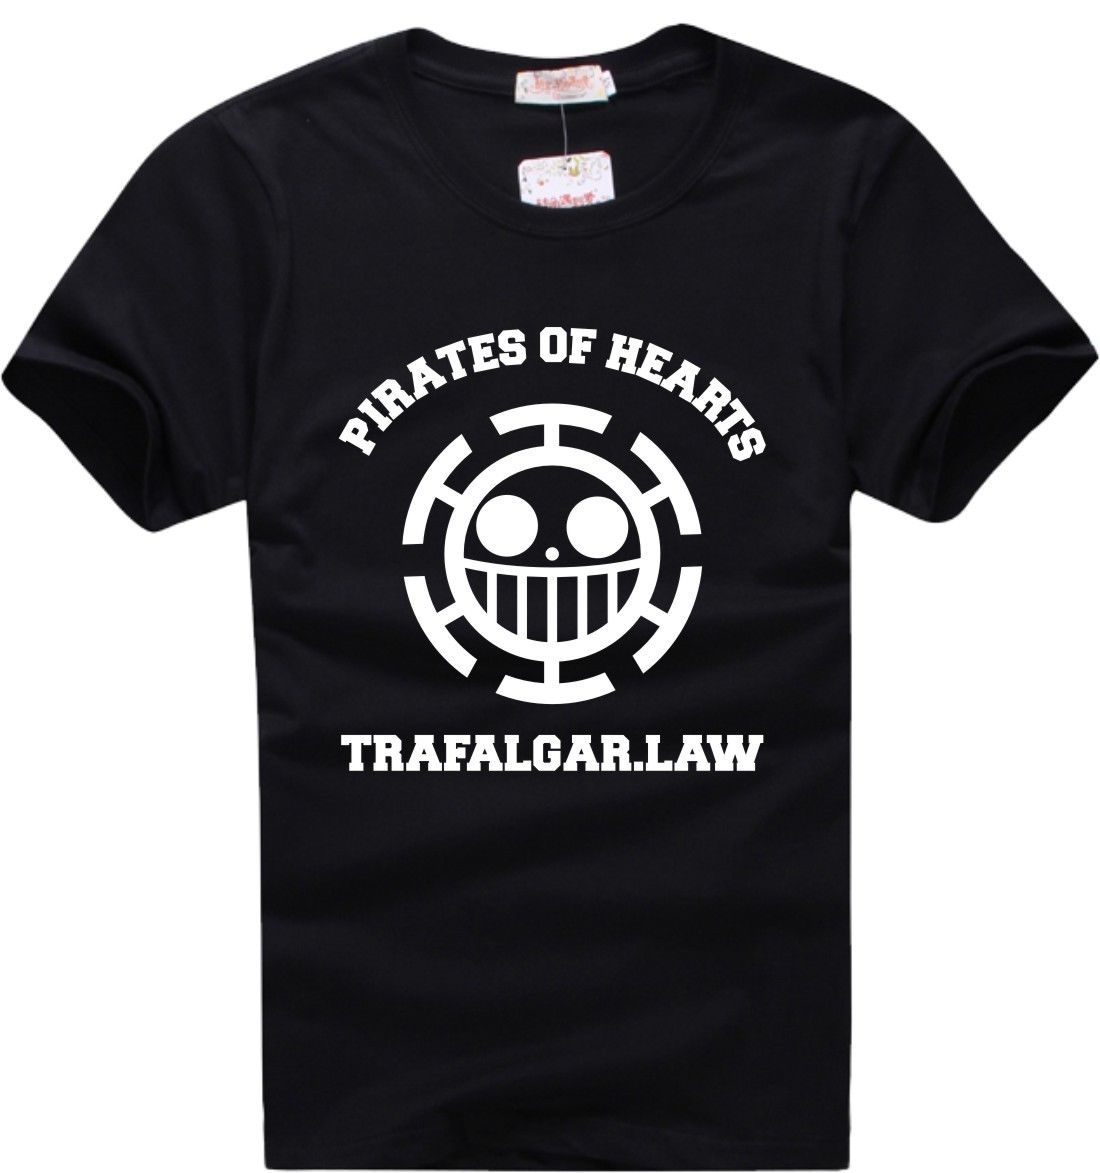 One Piece Trafalgar Law T-Shirt Animation Comic Cosplay  Cartoon t shirt men Unisex New Fashion tshirt free shipping